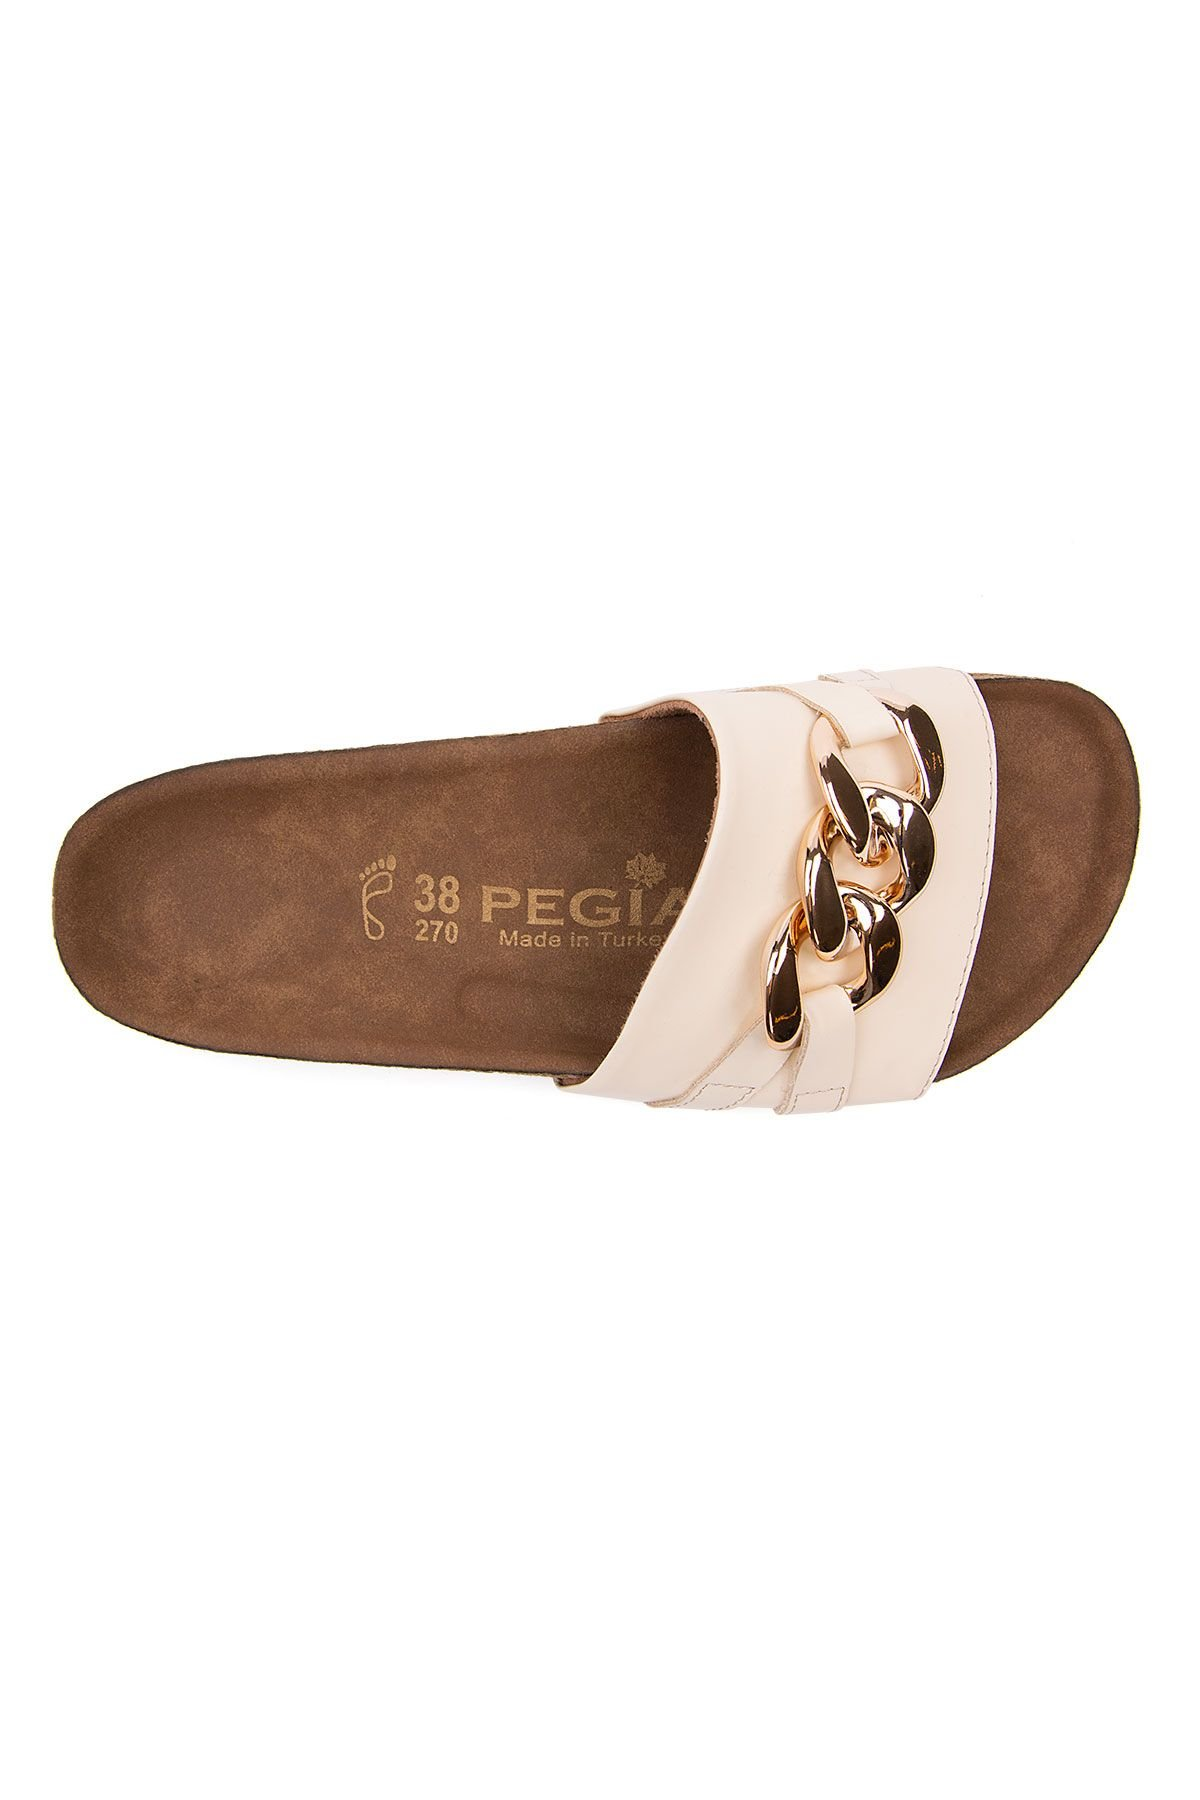 Pegia Women's Chain Buckles Leather Slippers 215530 Beige